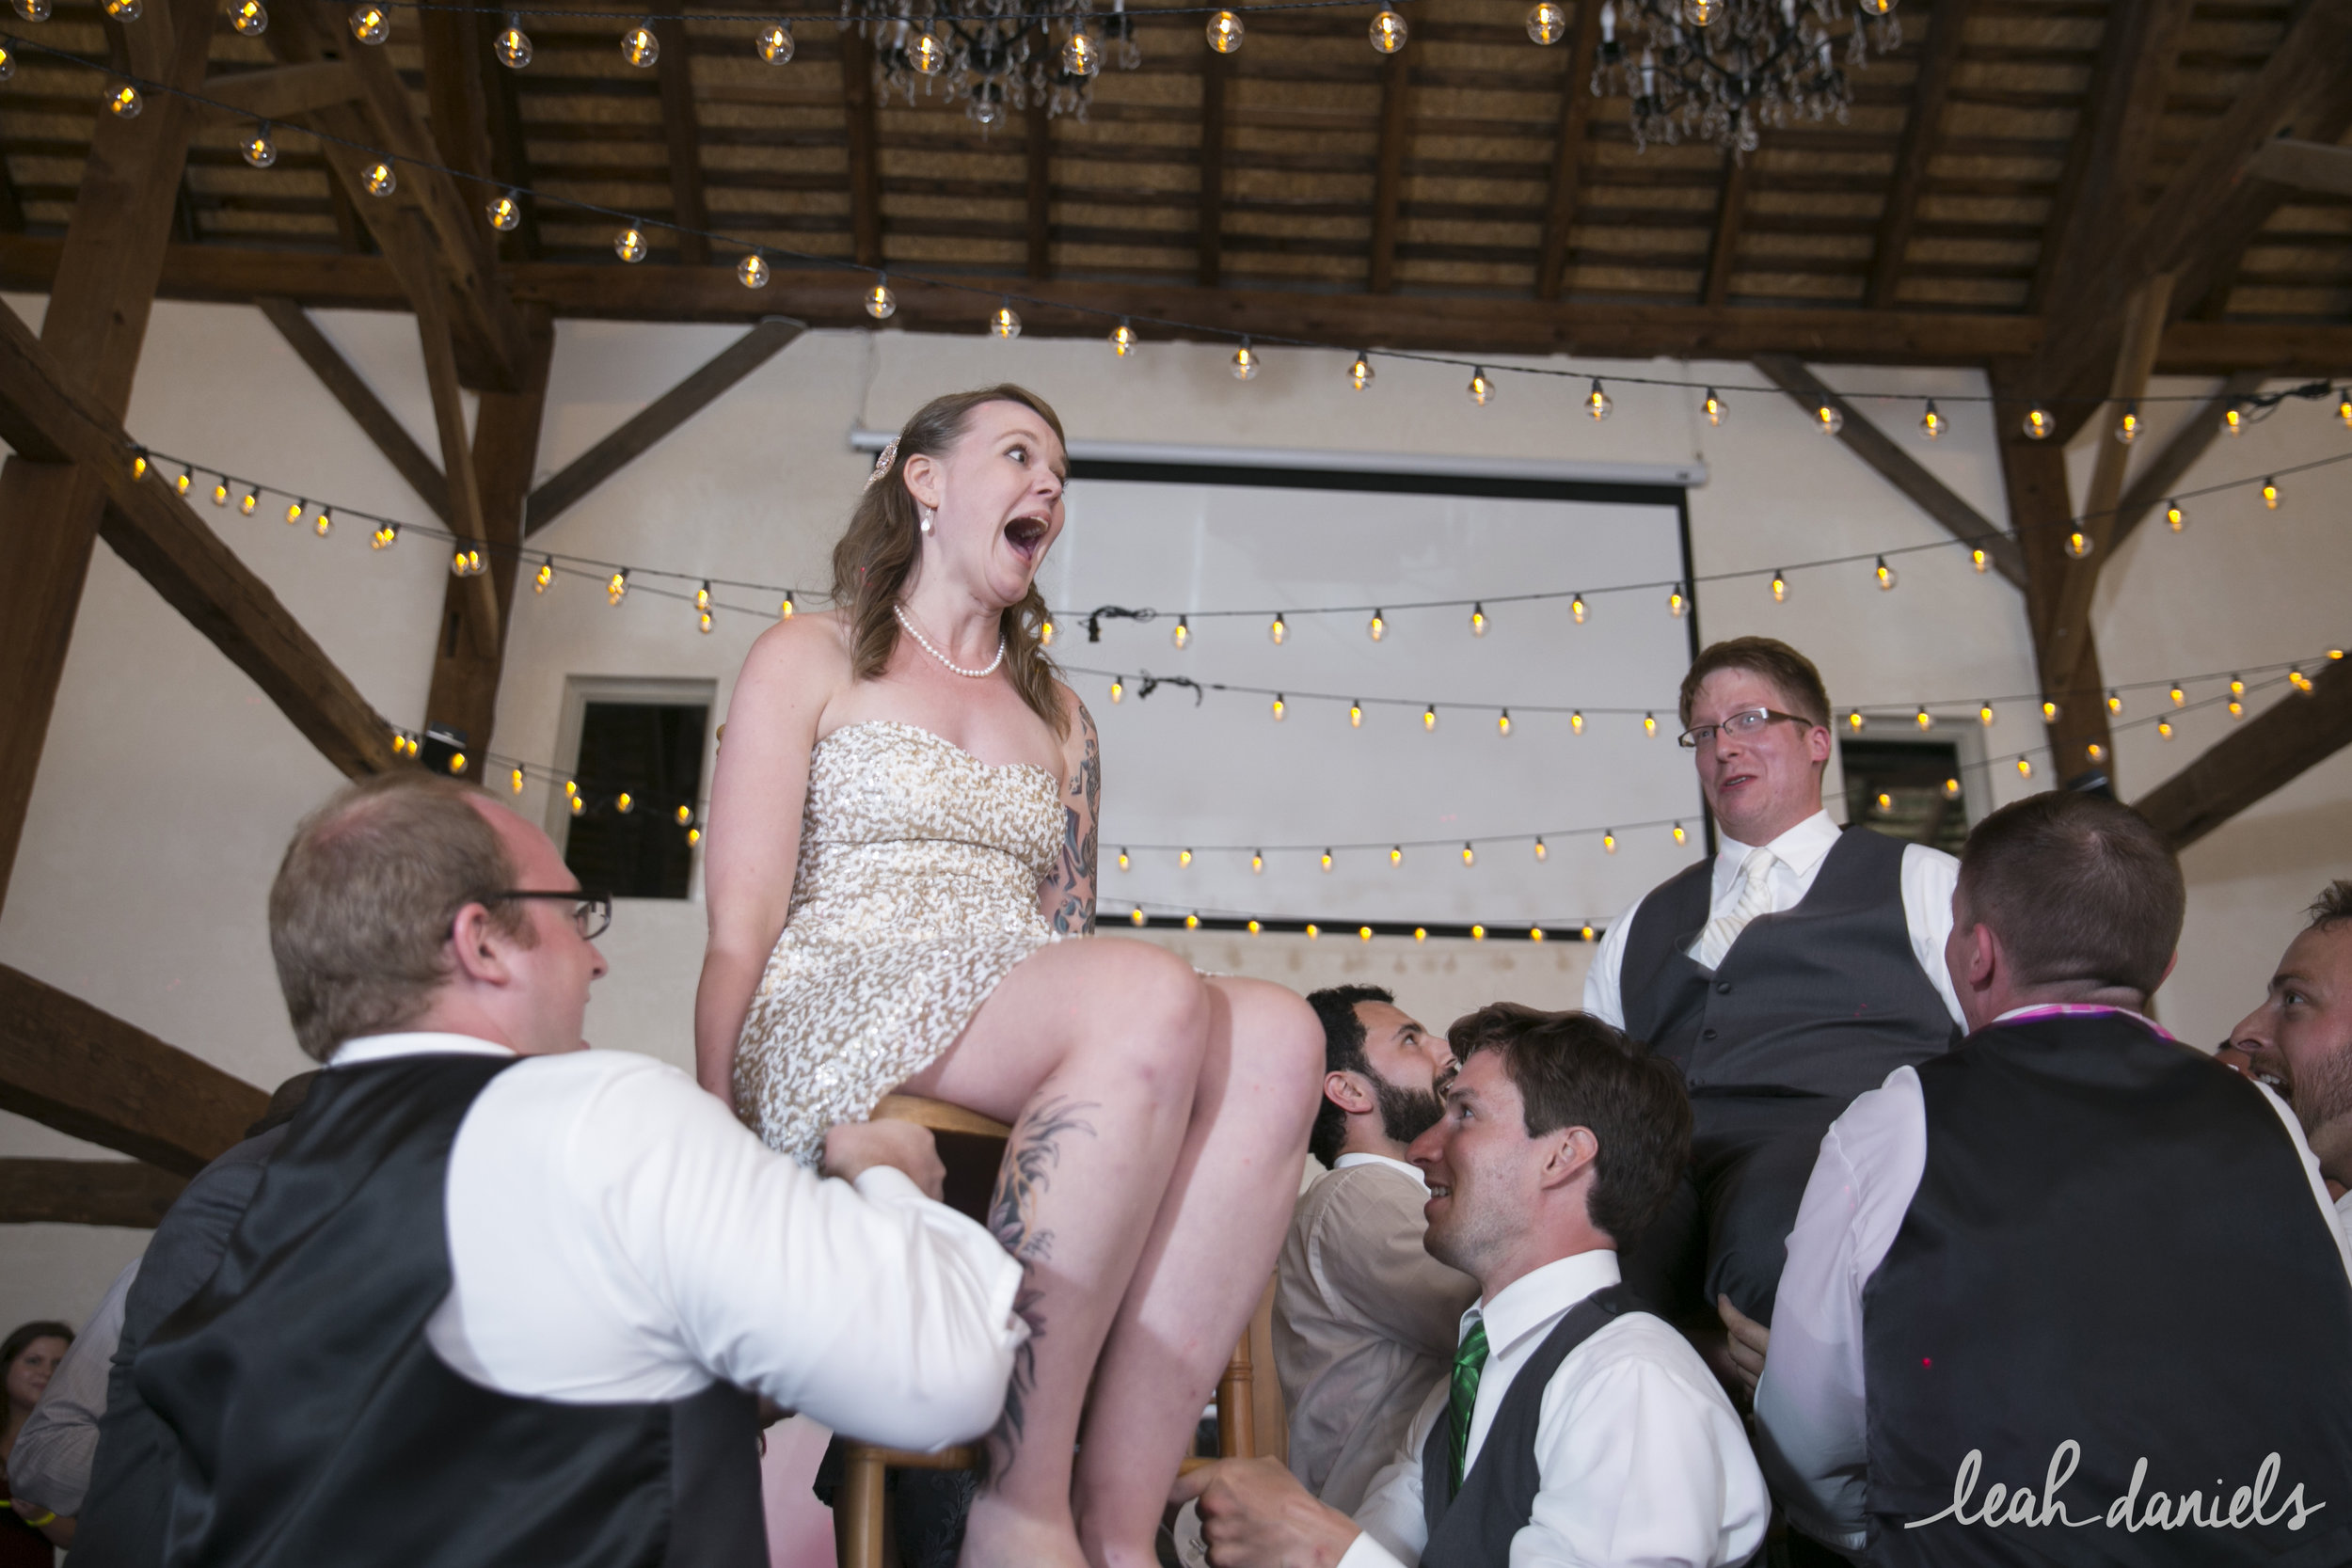 Tiffany and Sasha holding on tight to their chairs during the Hora!